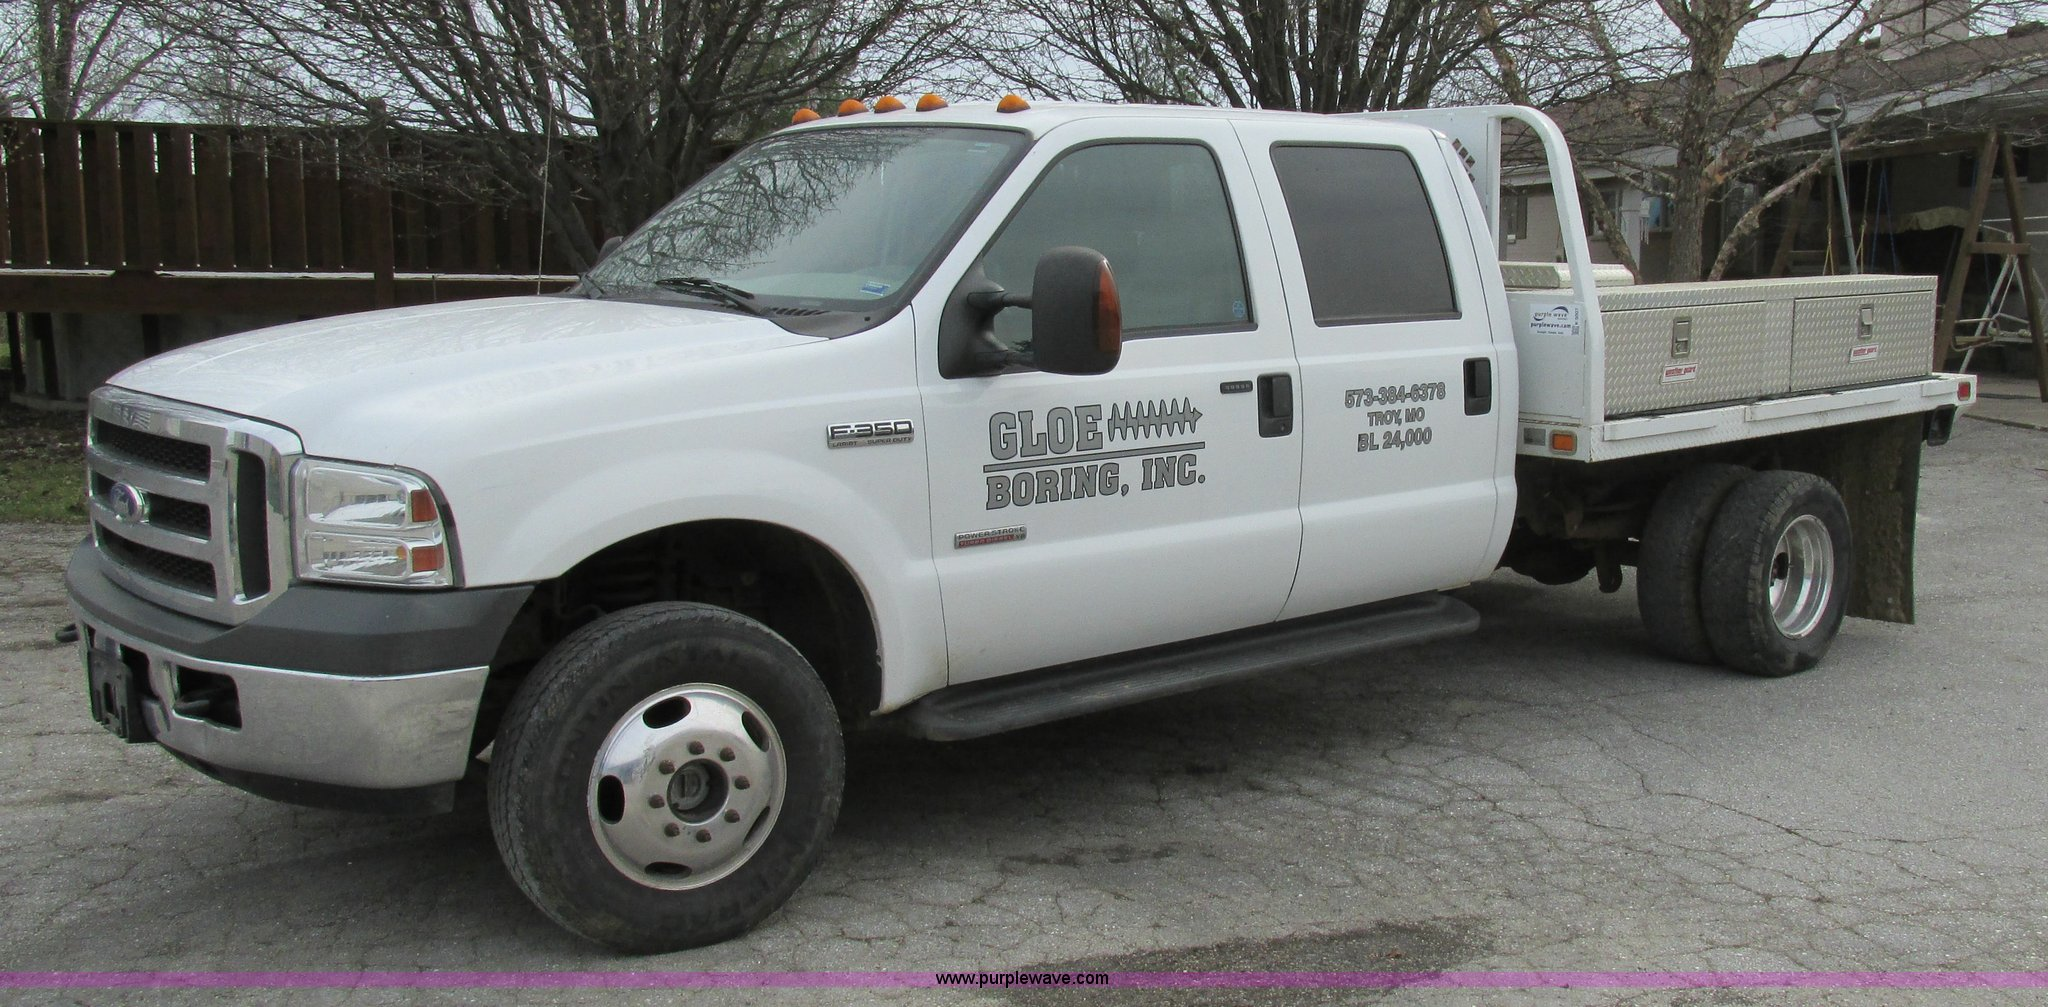 2005 Ford F350 Super Duty Xlt Crew Cab Flatbed Truck In Troy Mo Item K5007 Sold Purple Wave